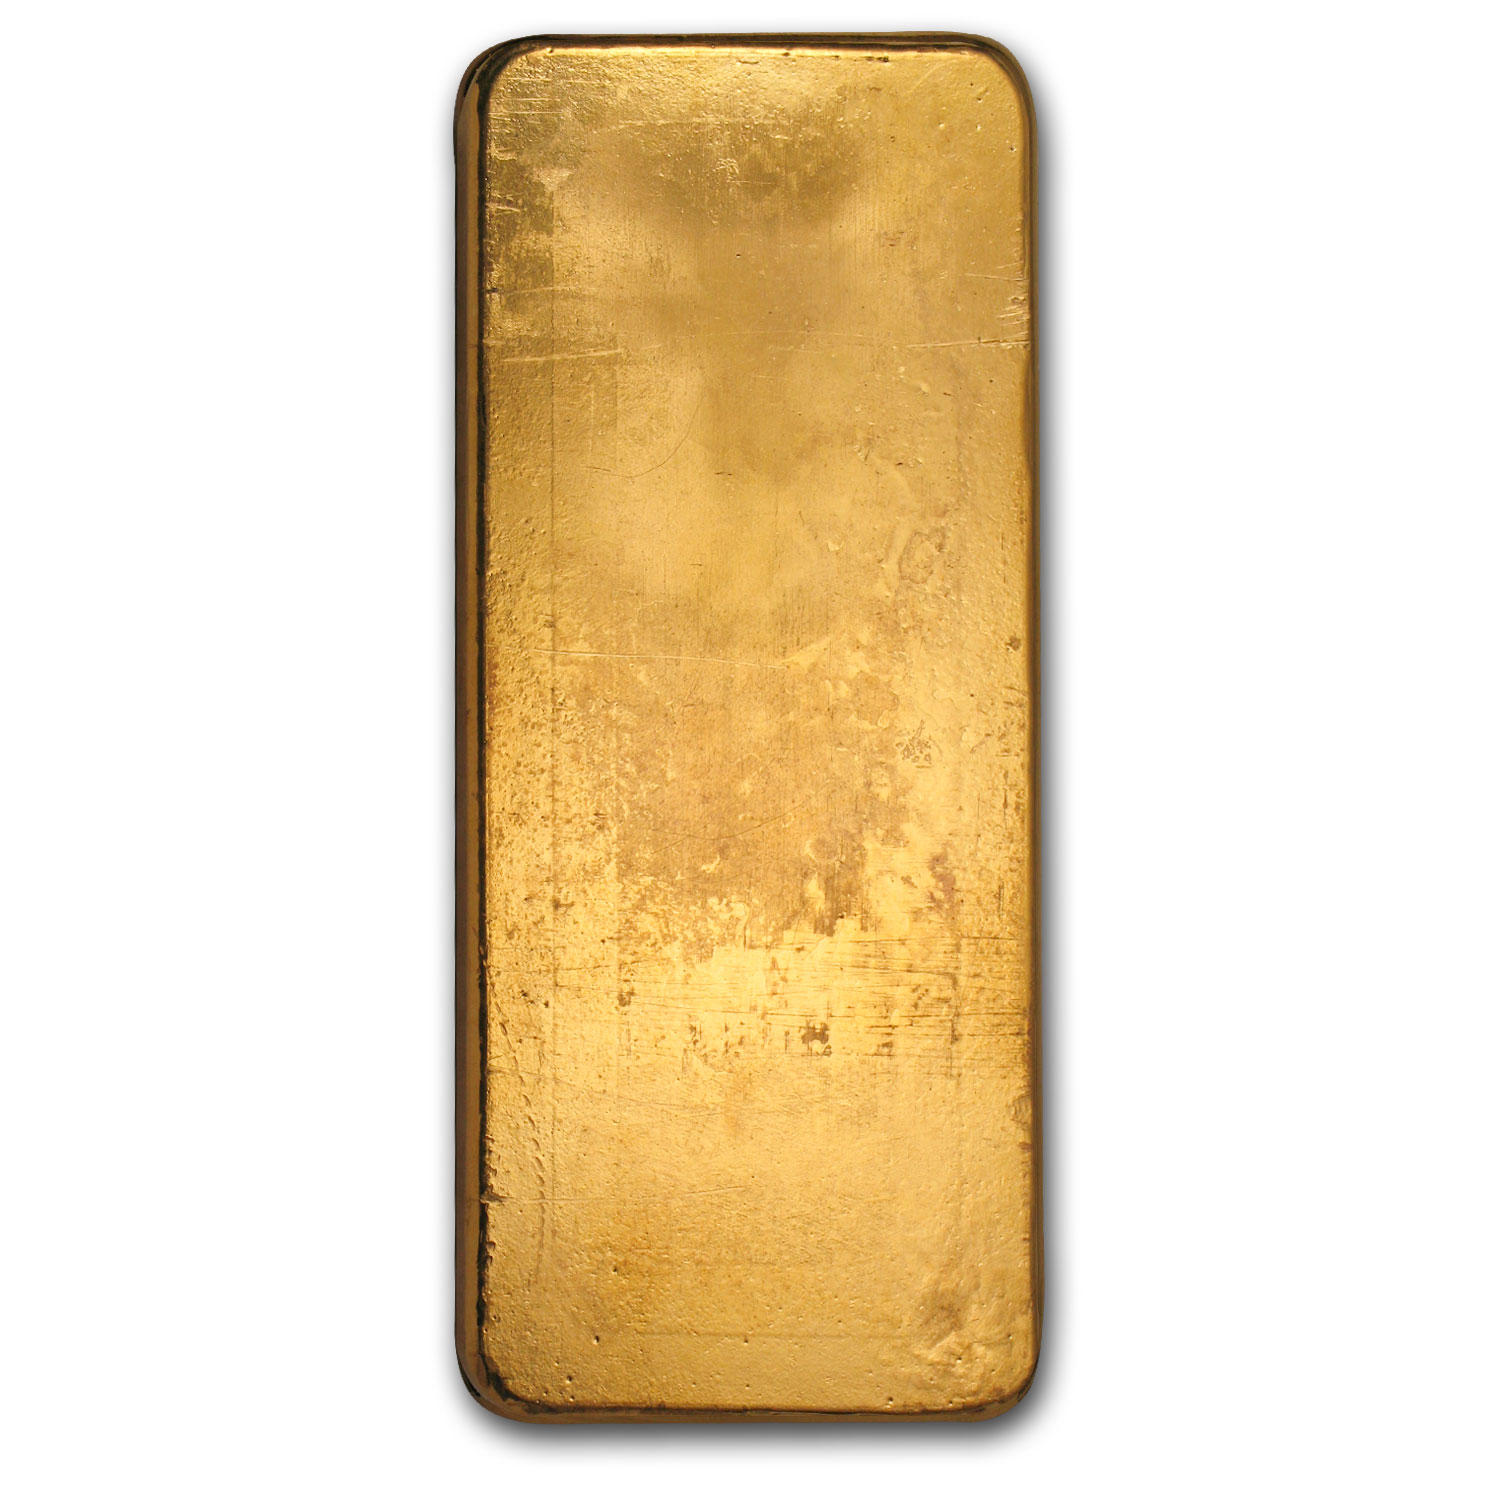 1 kilo Gold Bar - Heraeus (32.15 oz)